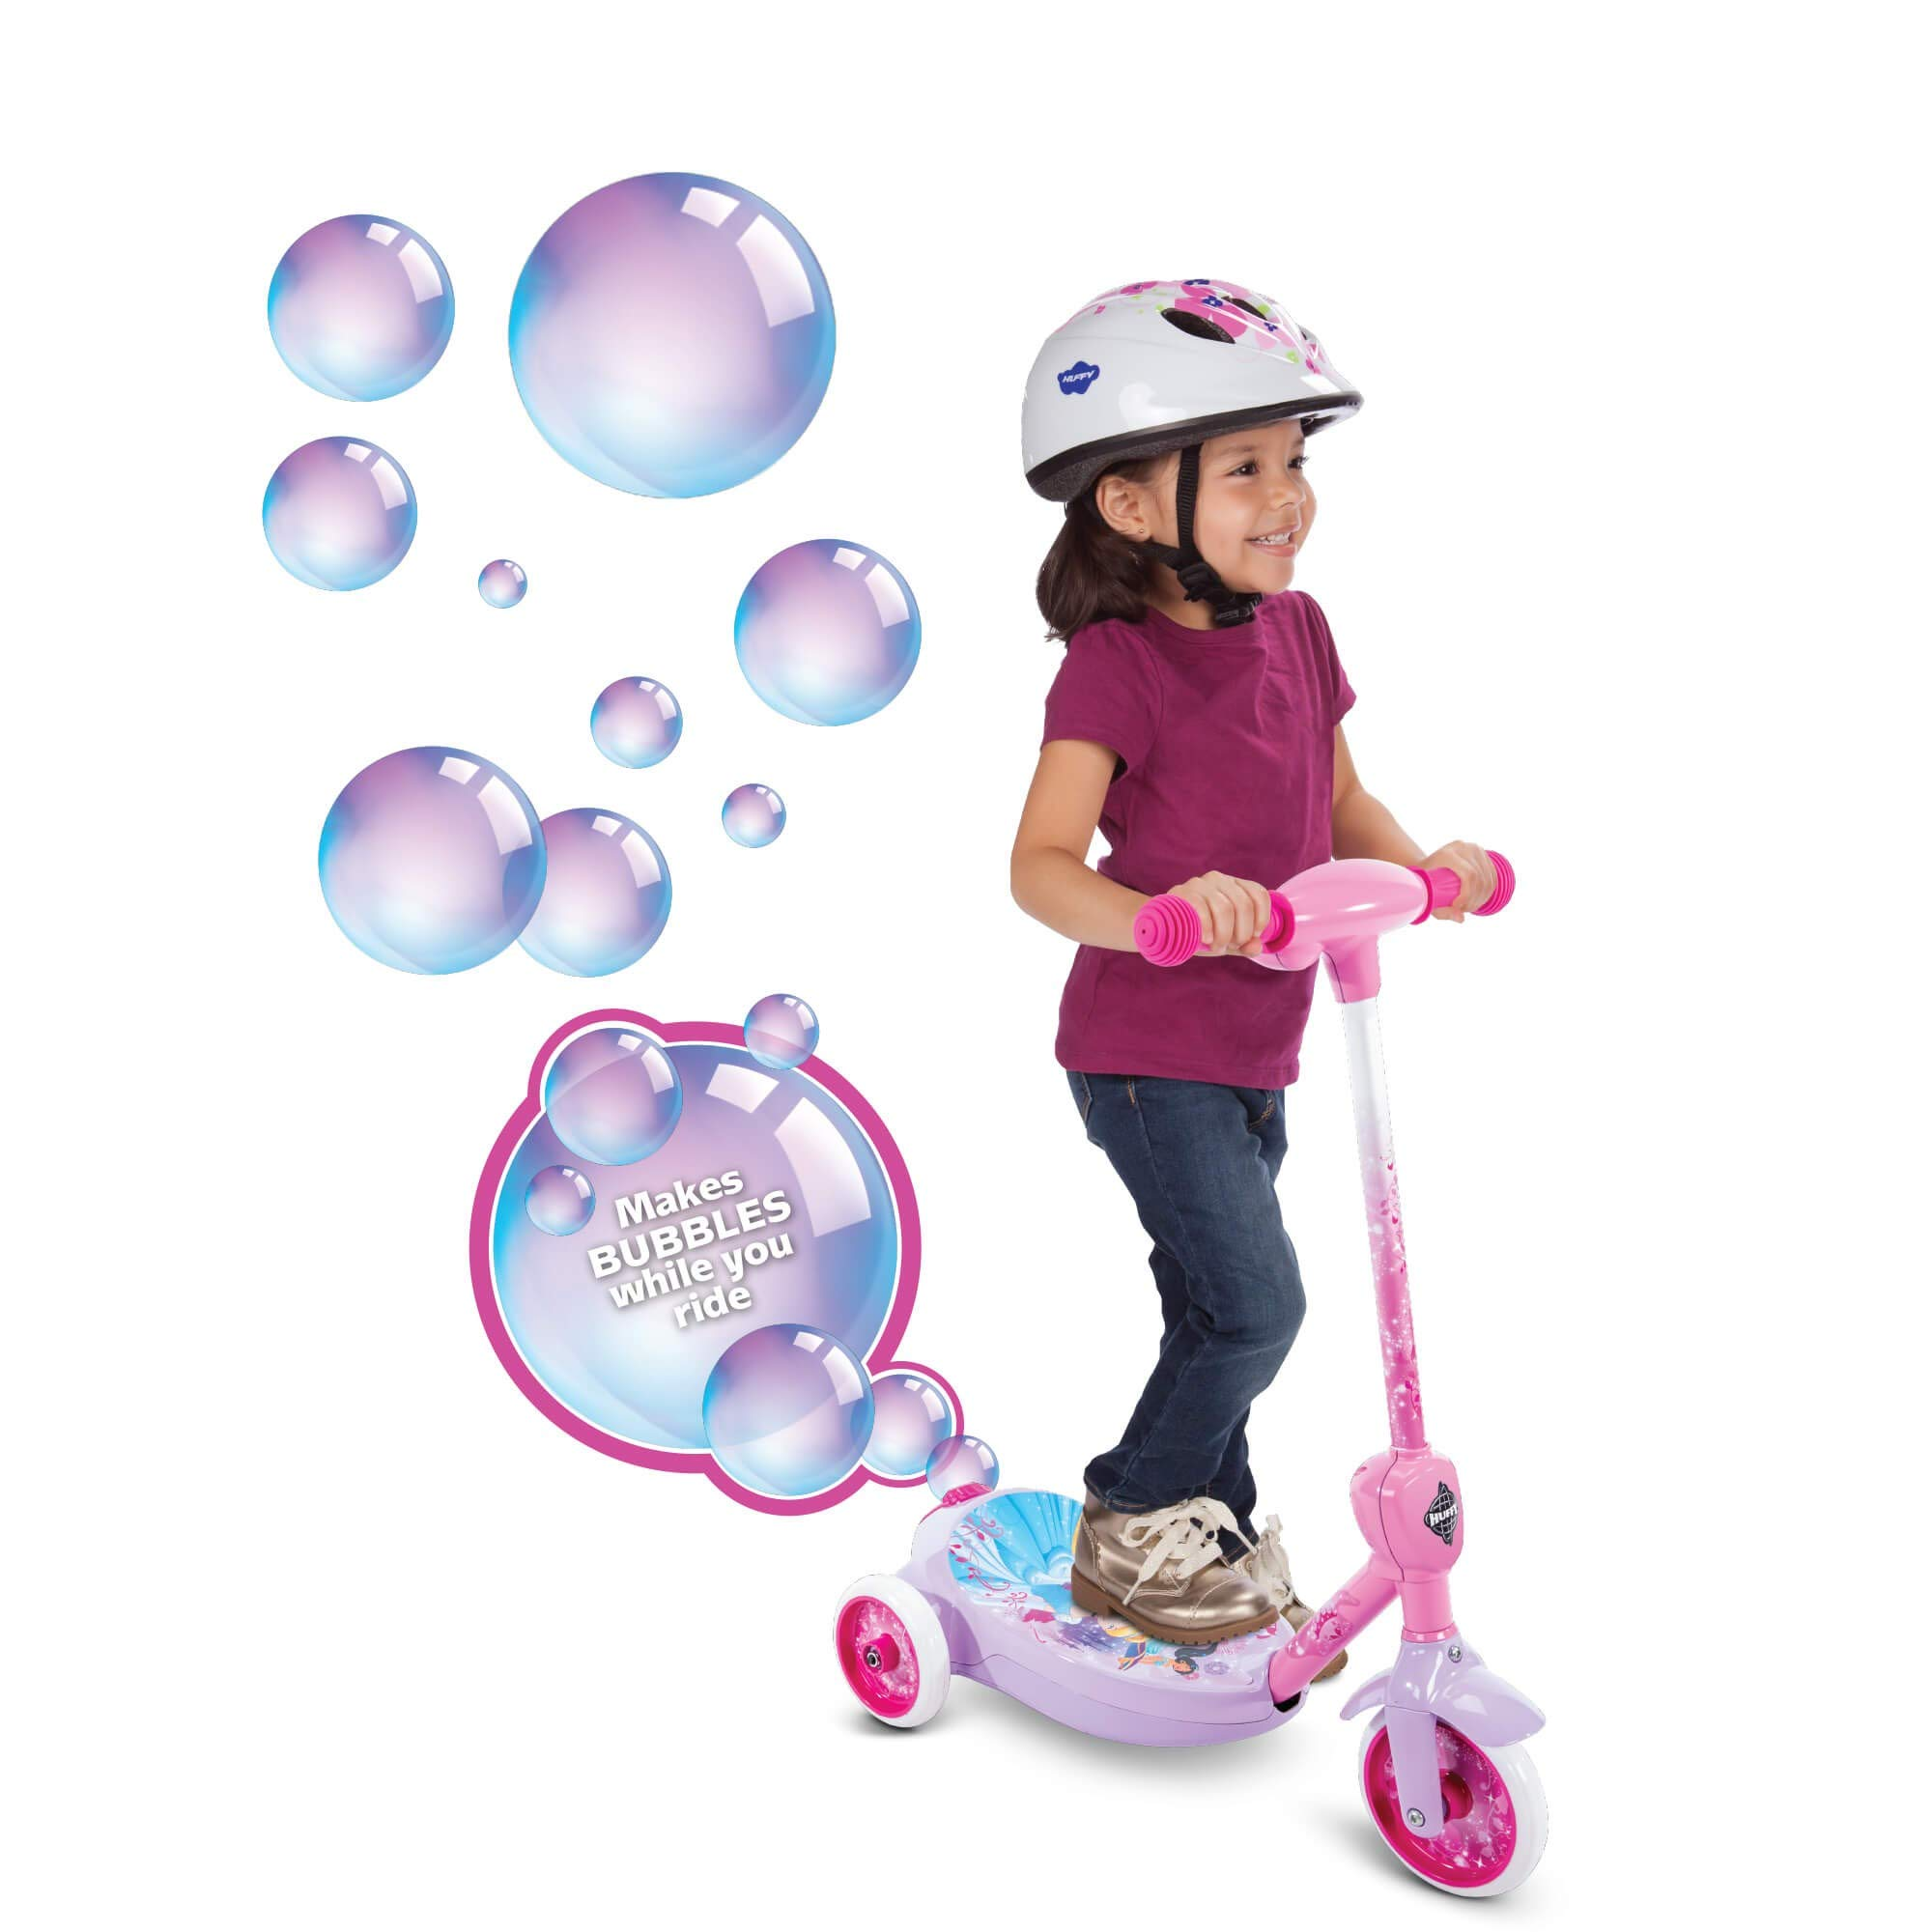 Huffy Disney Princess Girls' 6V Electric 3-Wheel Bubble Scooter by Huffy (Image #3)